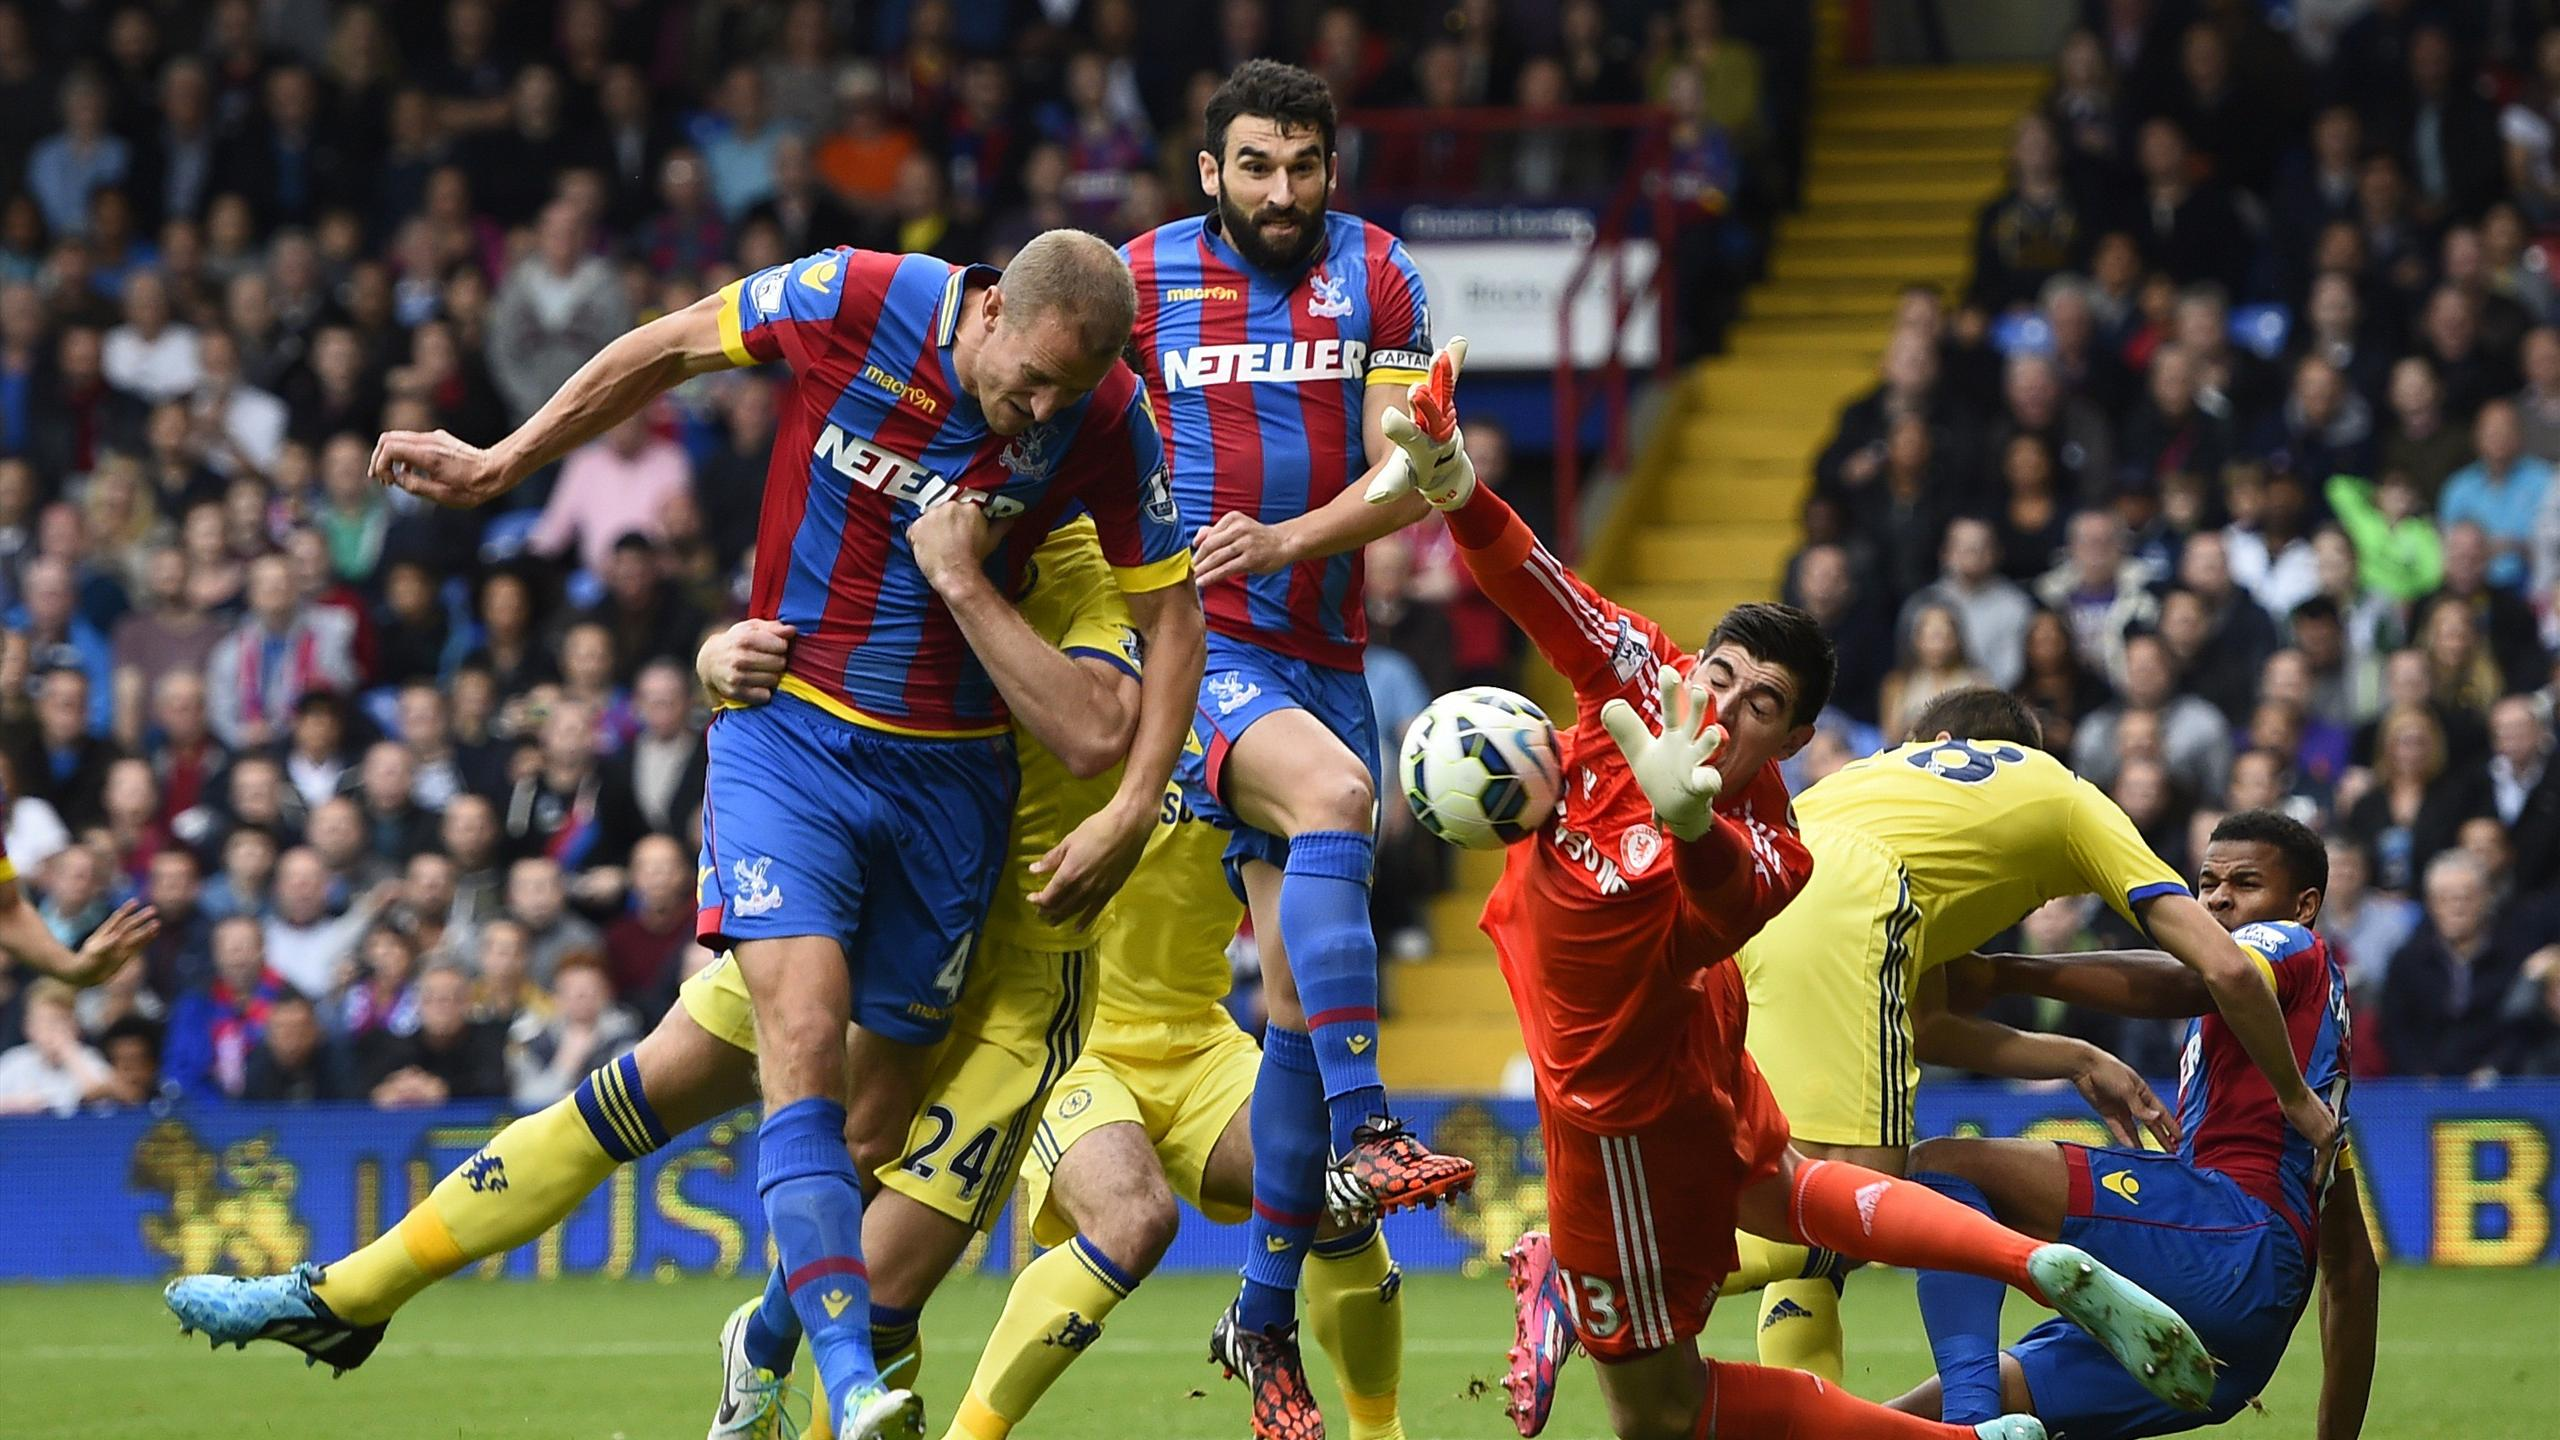 Crystal Palace's Brede Hangeland (L) has a header saved by Chelsea's Thibaut Courtois